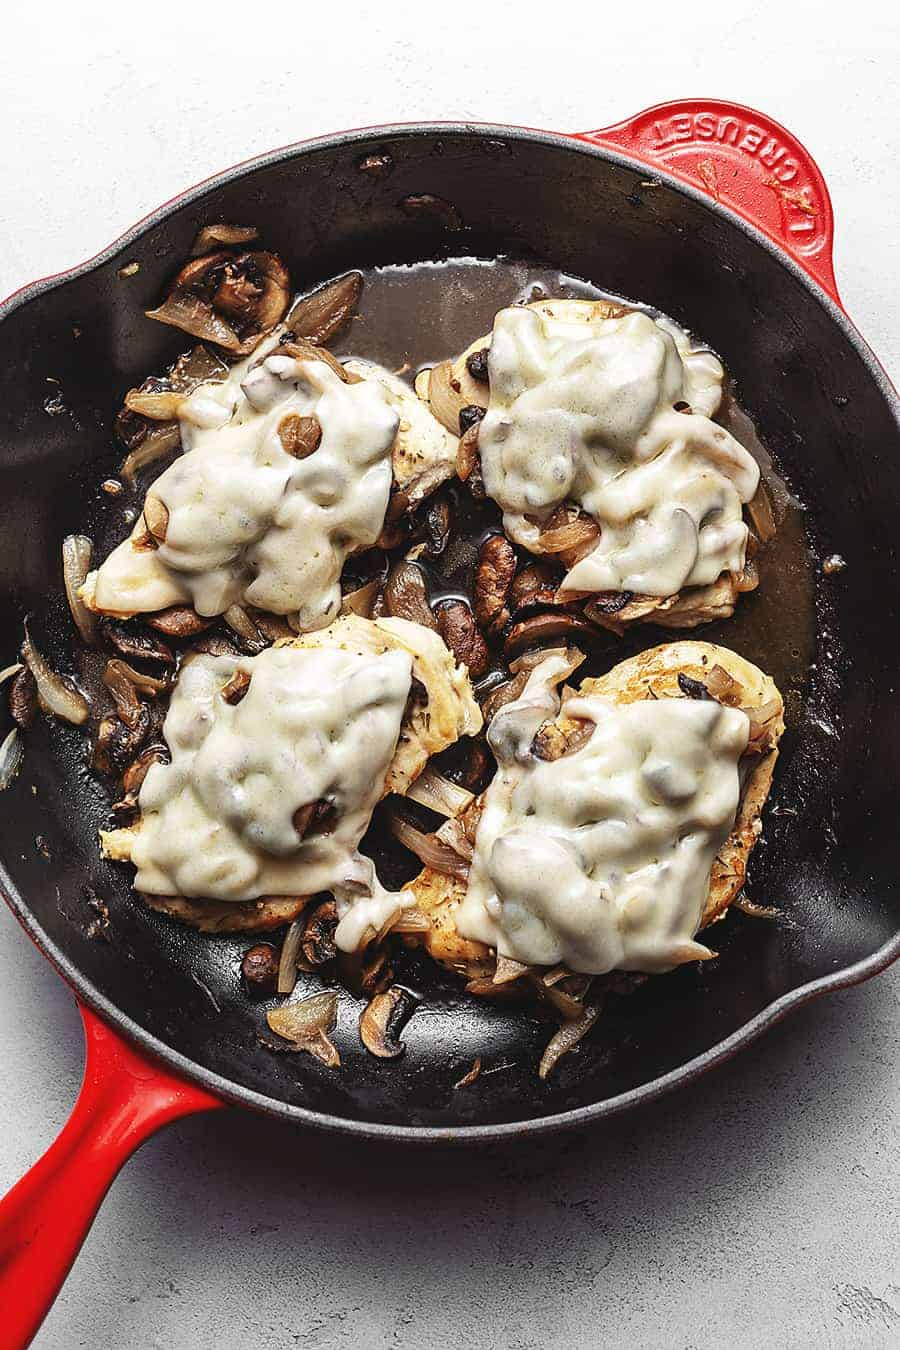 French onion smothered chicken in a cast iron skillet